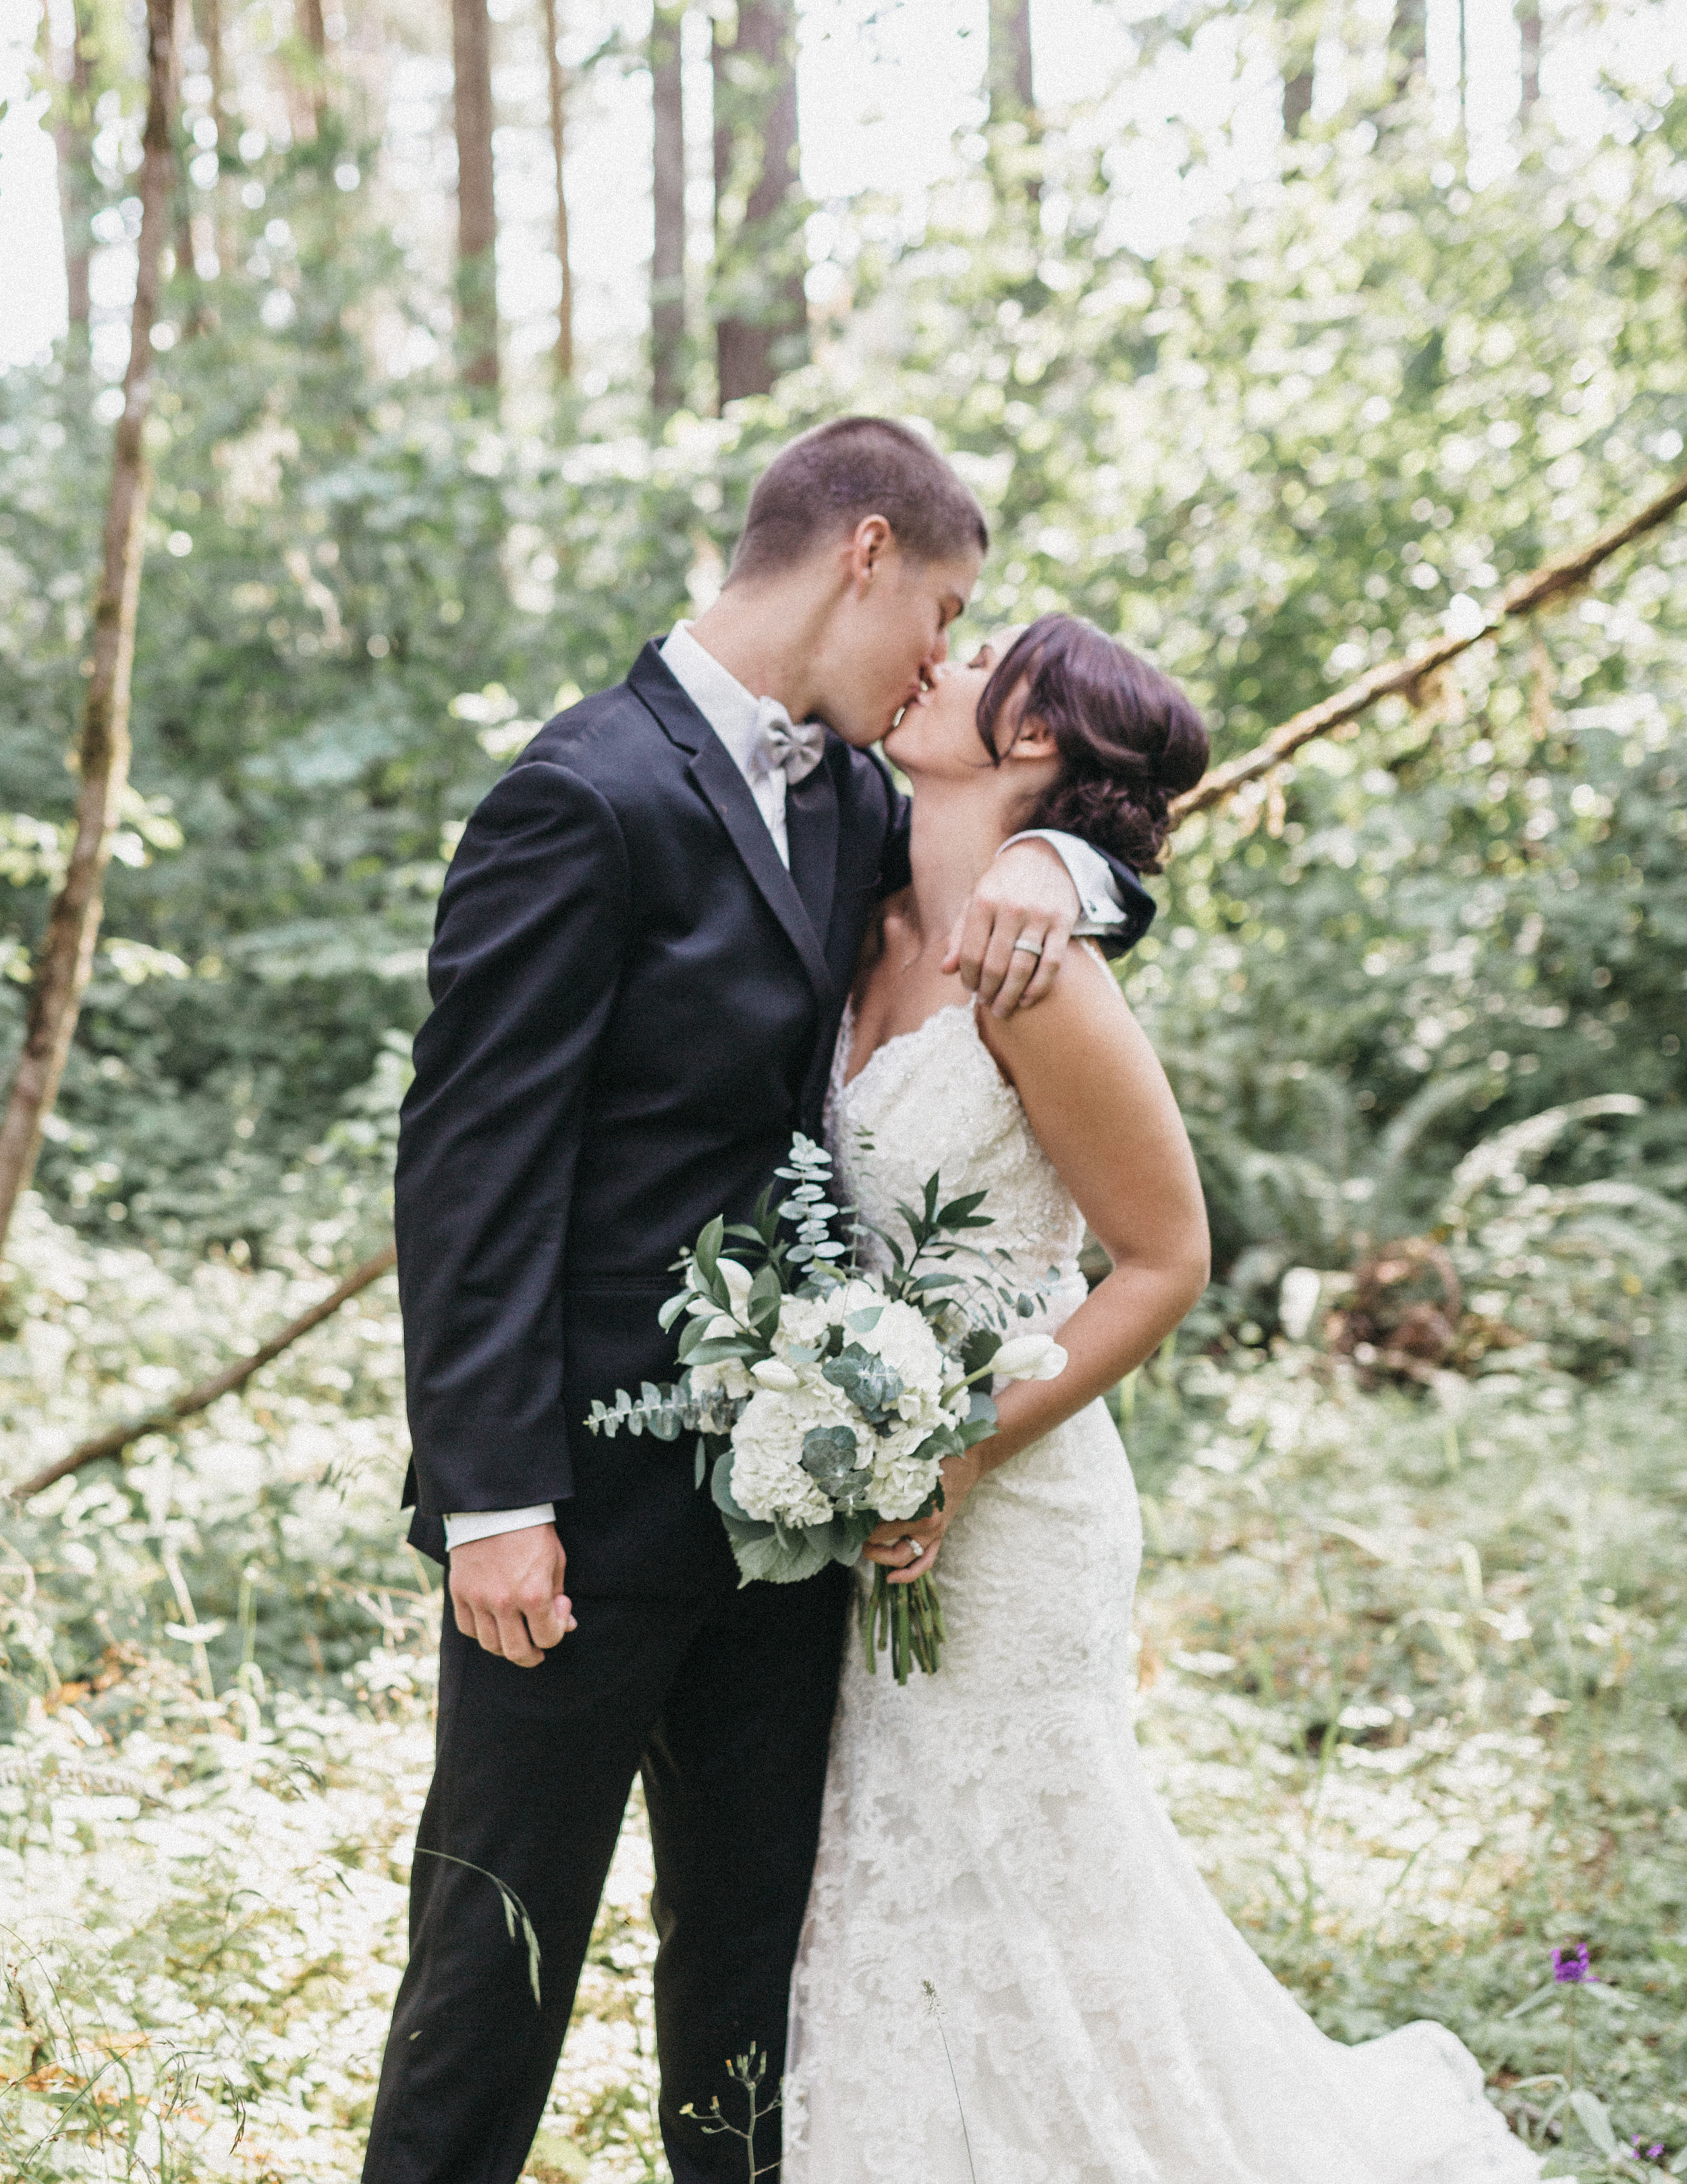 Shaynah Vandegriffe Photography | Eugene, Oregon wedding photographer | Deep Woods Events Wedding | Oregon Bride | Father of the Bride | Bride and Groom | Deep Woods Events